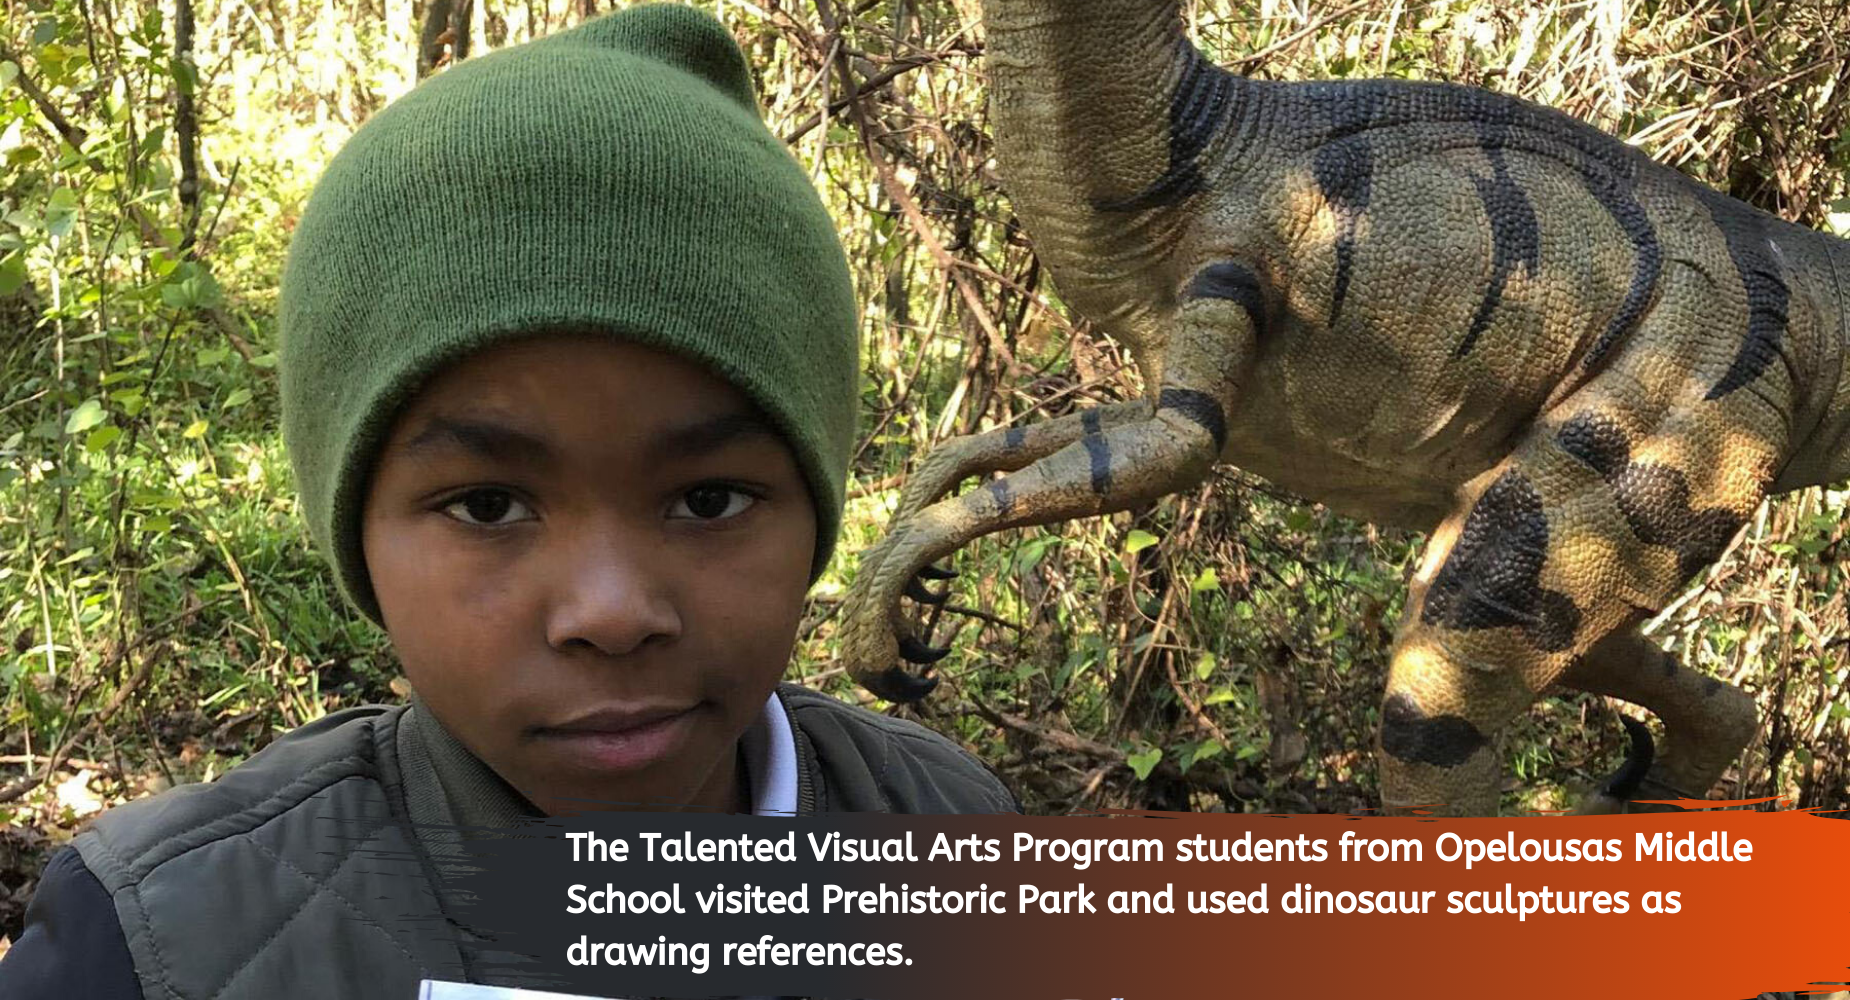 The Talented Visual Arts Program students from Opelousas Middle School visited Prehistoric Park and used dinosaur sculptures as drawing references.